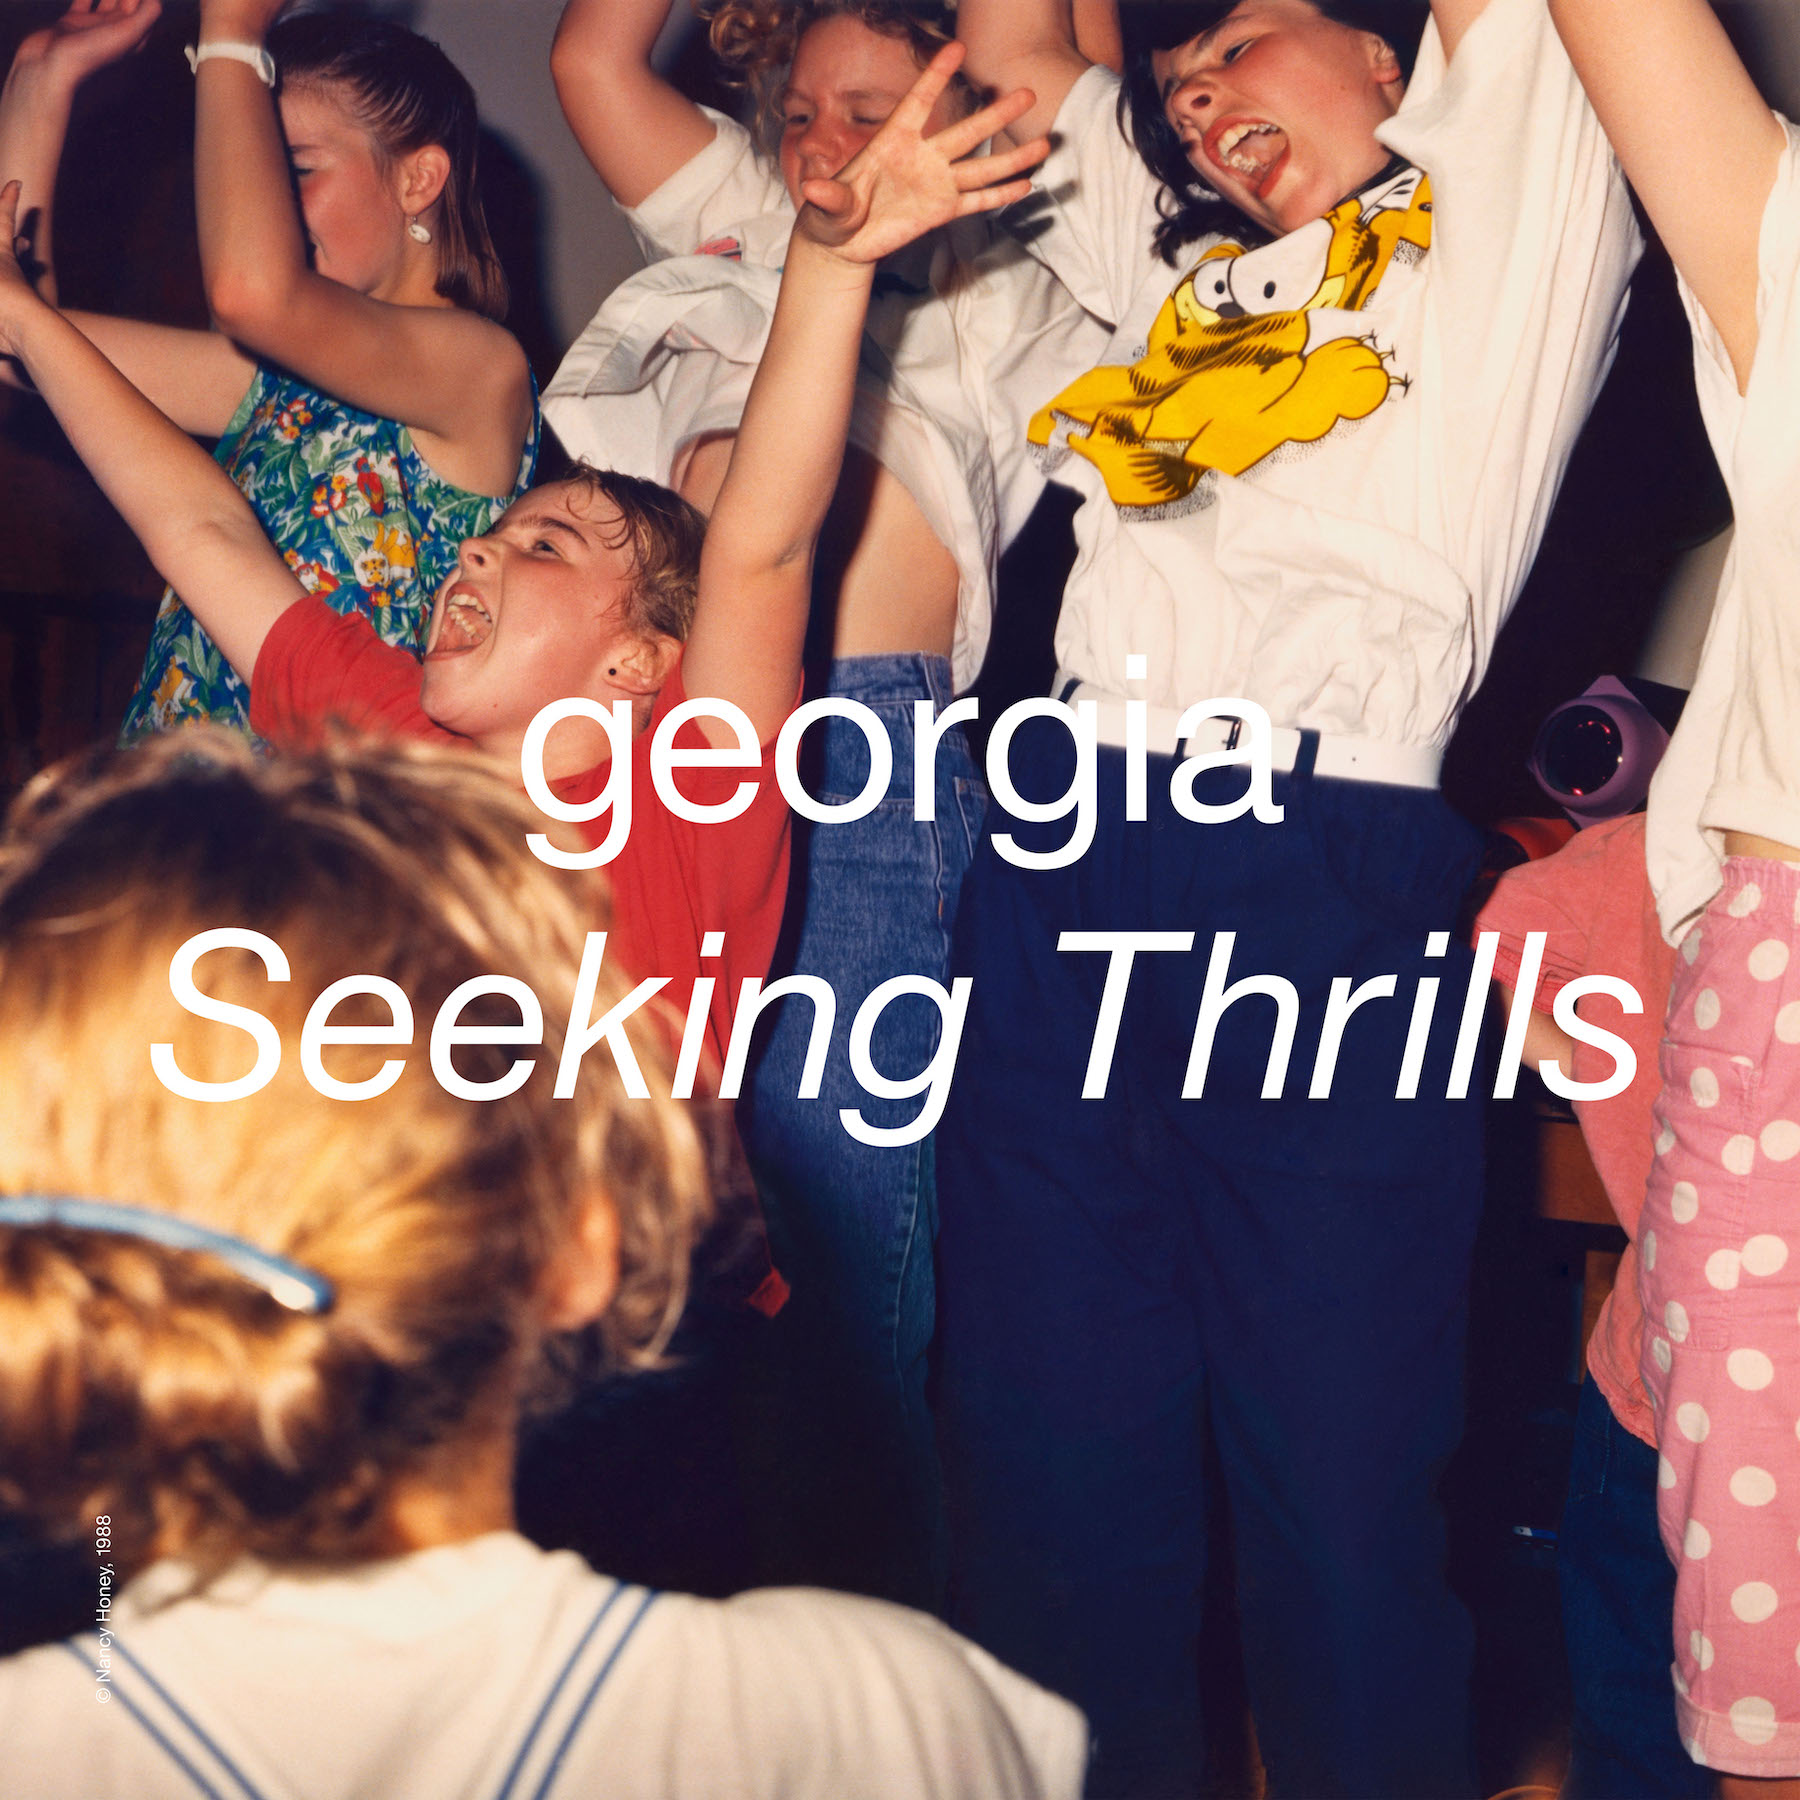 Image result for georgia seeking thrills